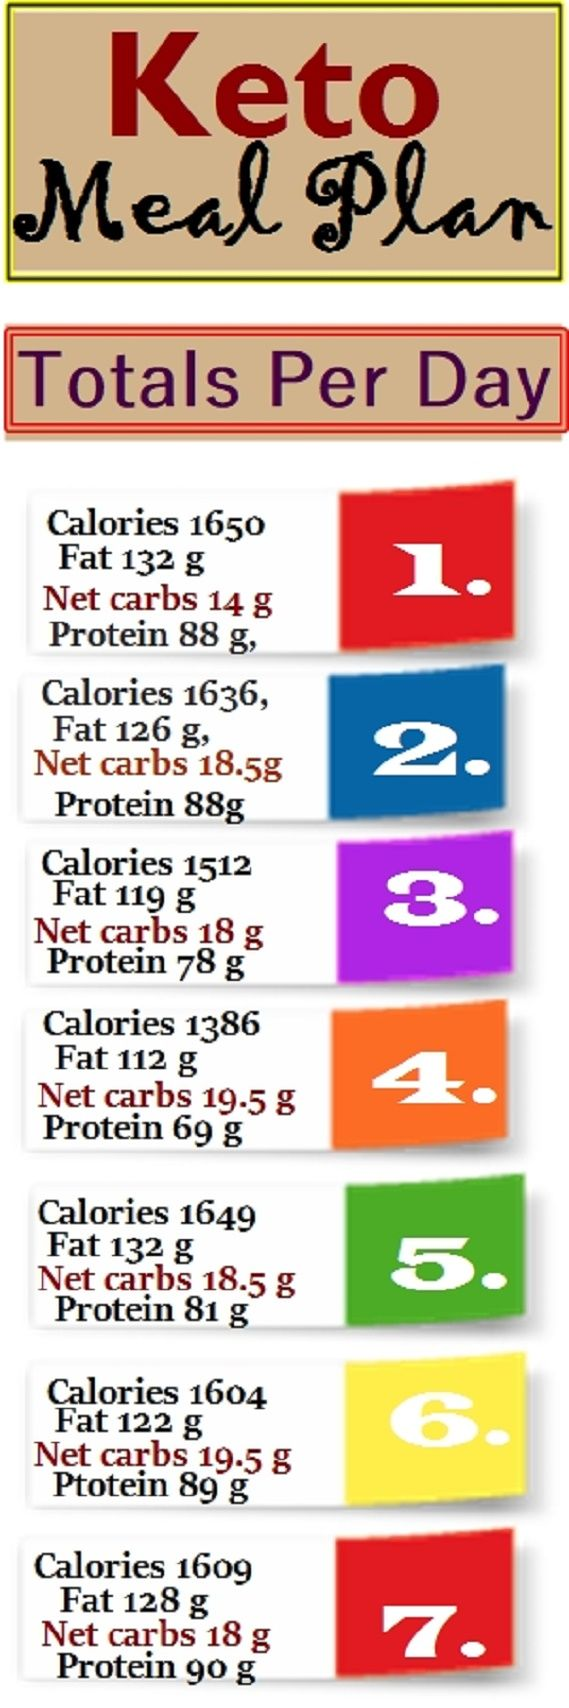 One Week Keto 7 Days Meals Plan! 20 g Carb Per Day | No ...